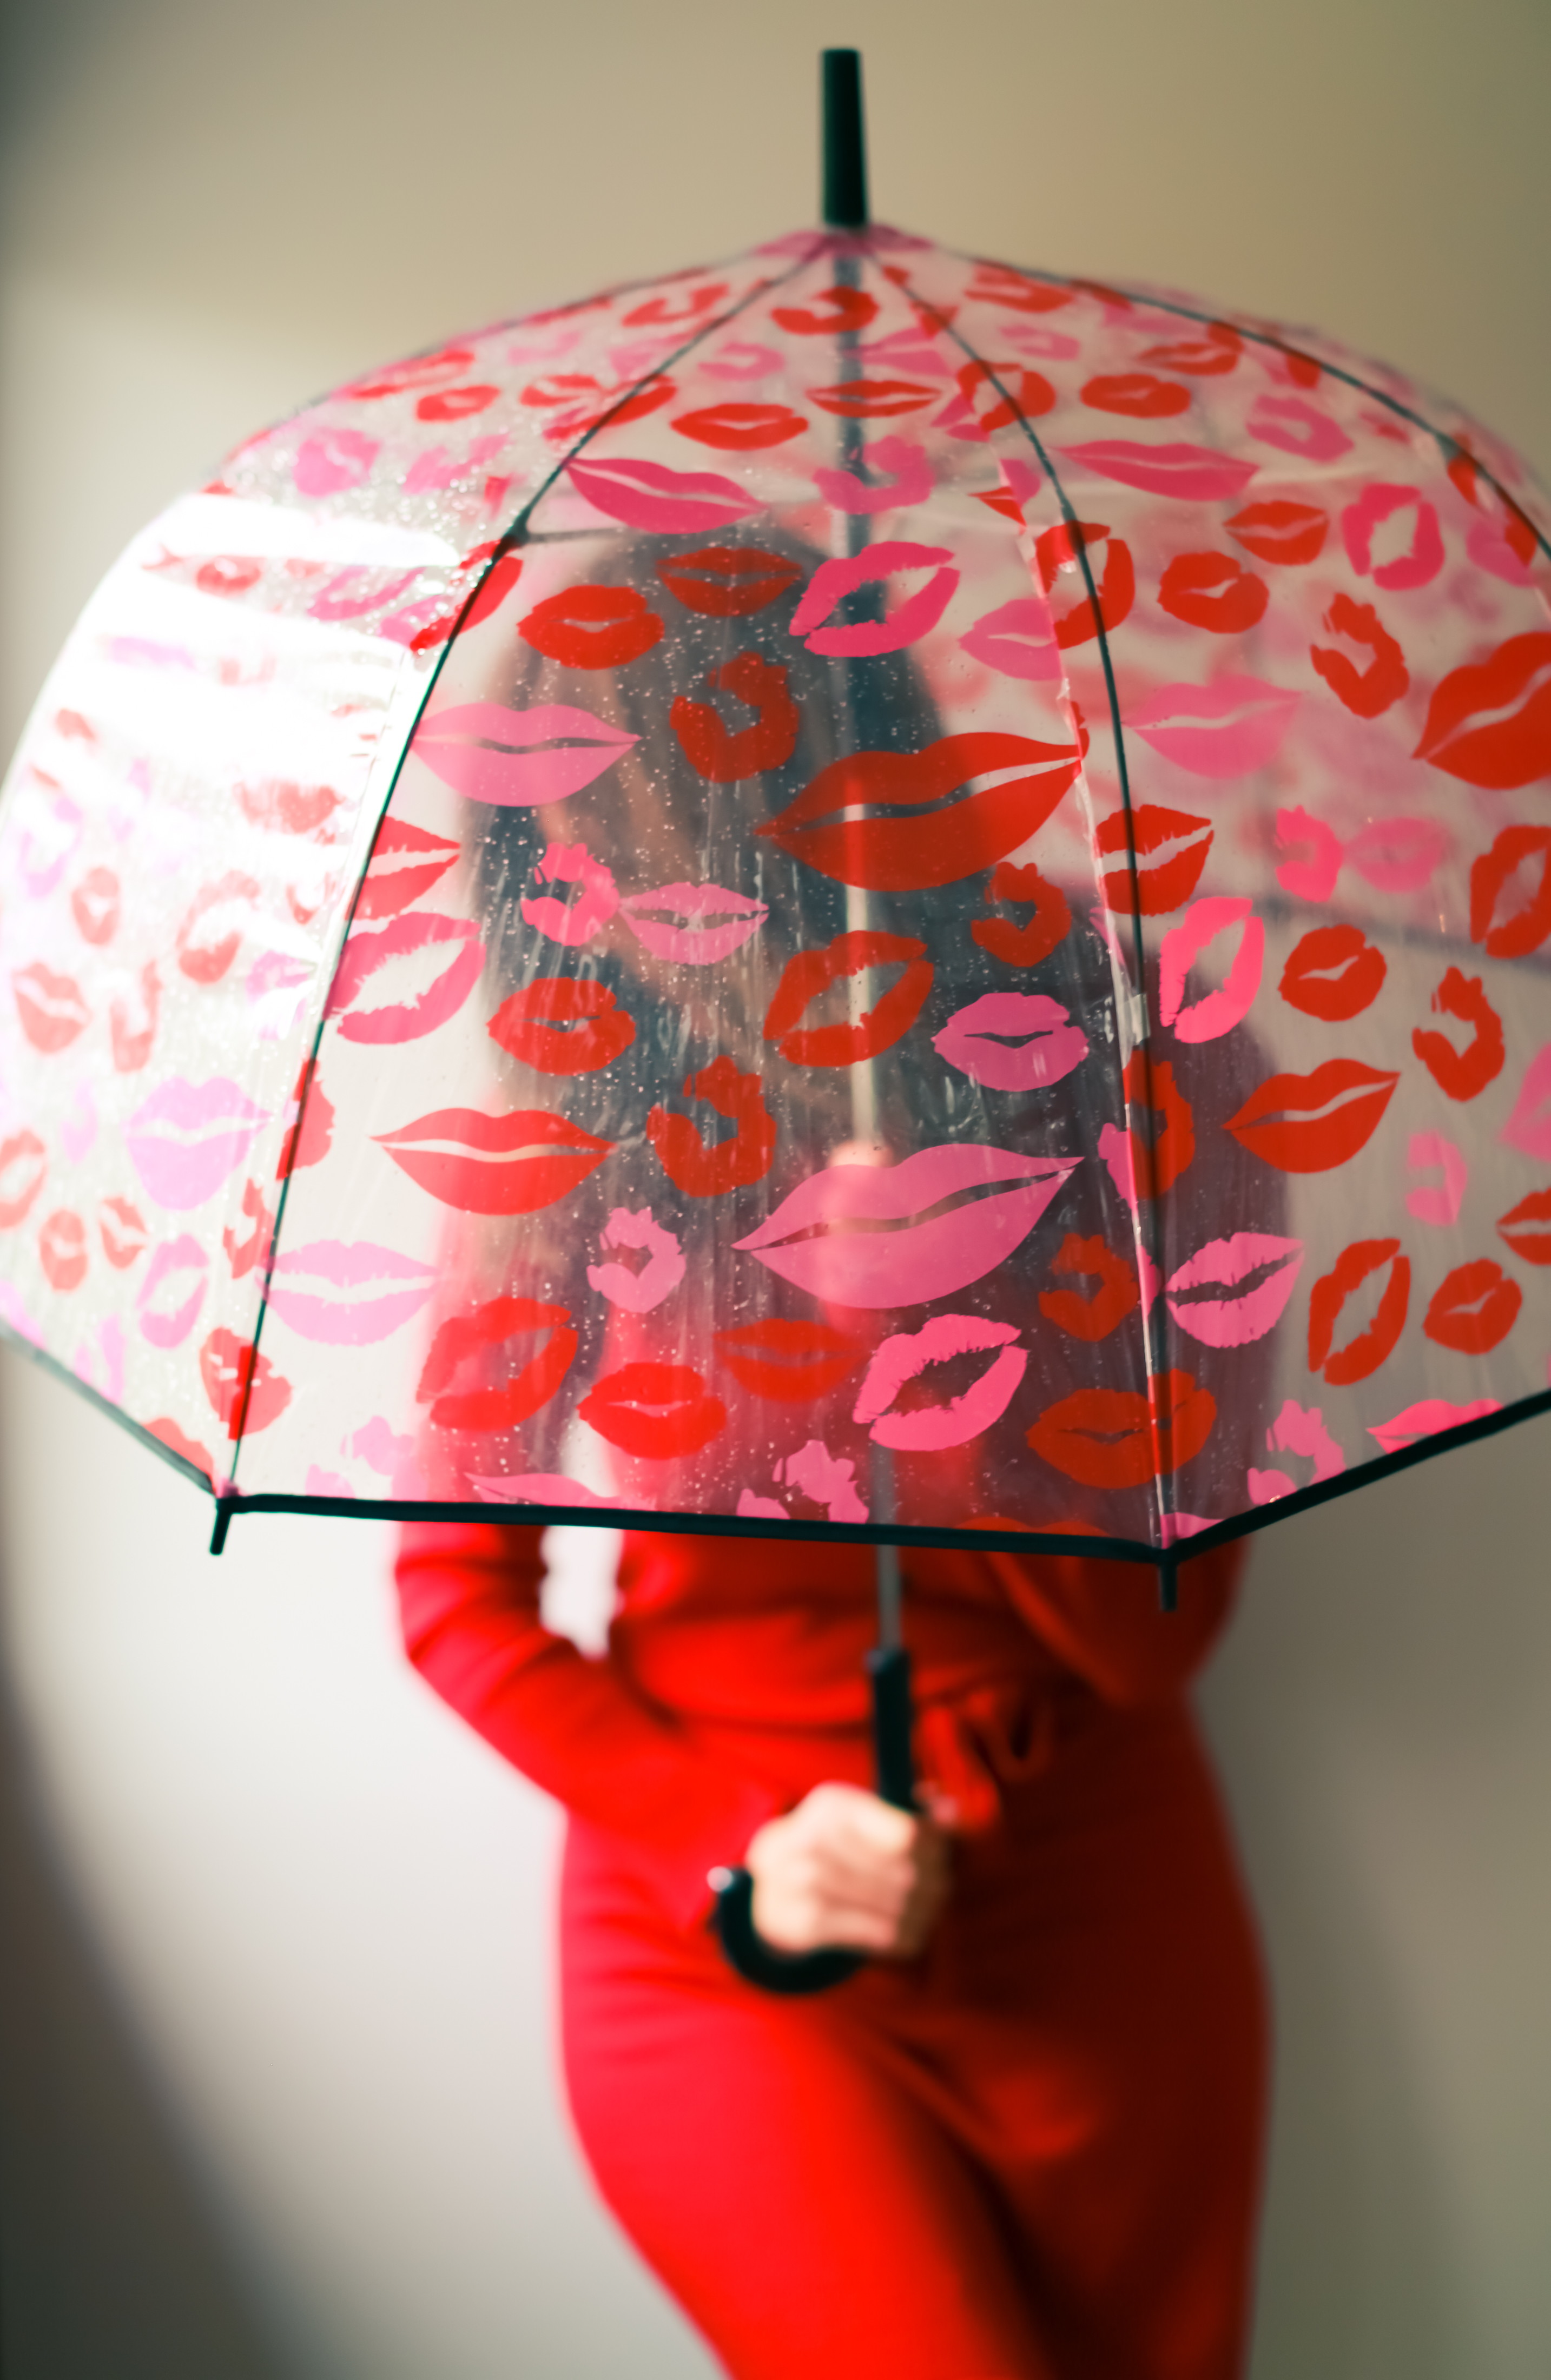 person in red long sleeve shirt holding white and red umbrella